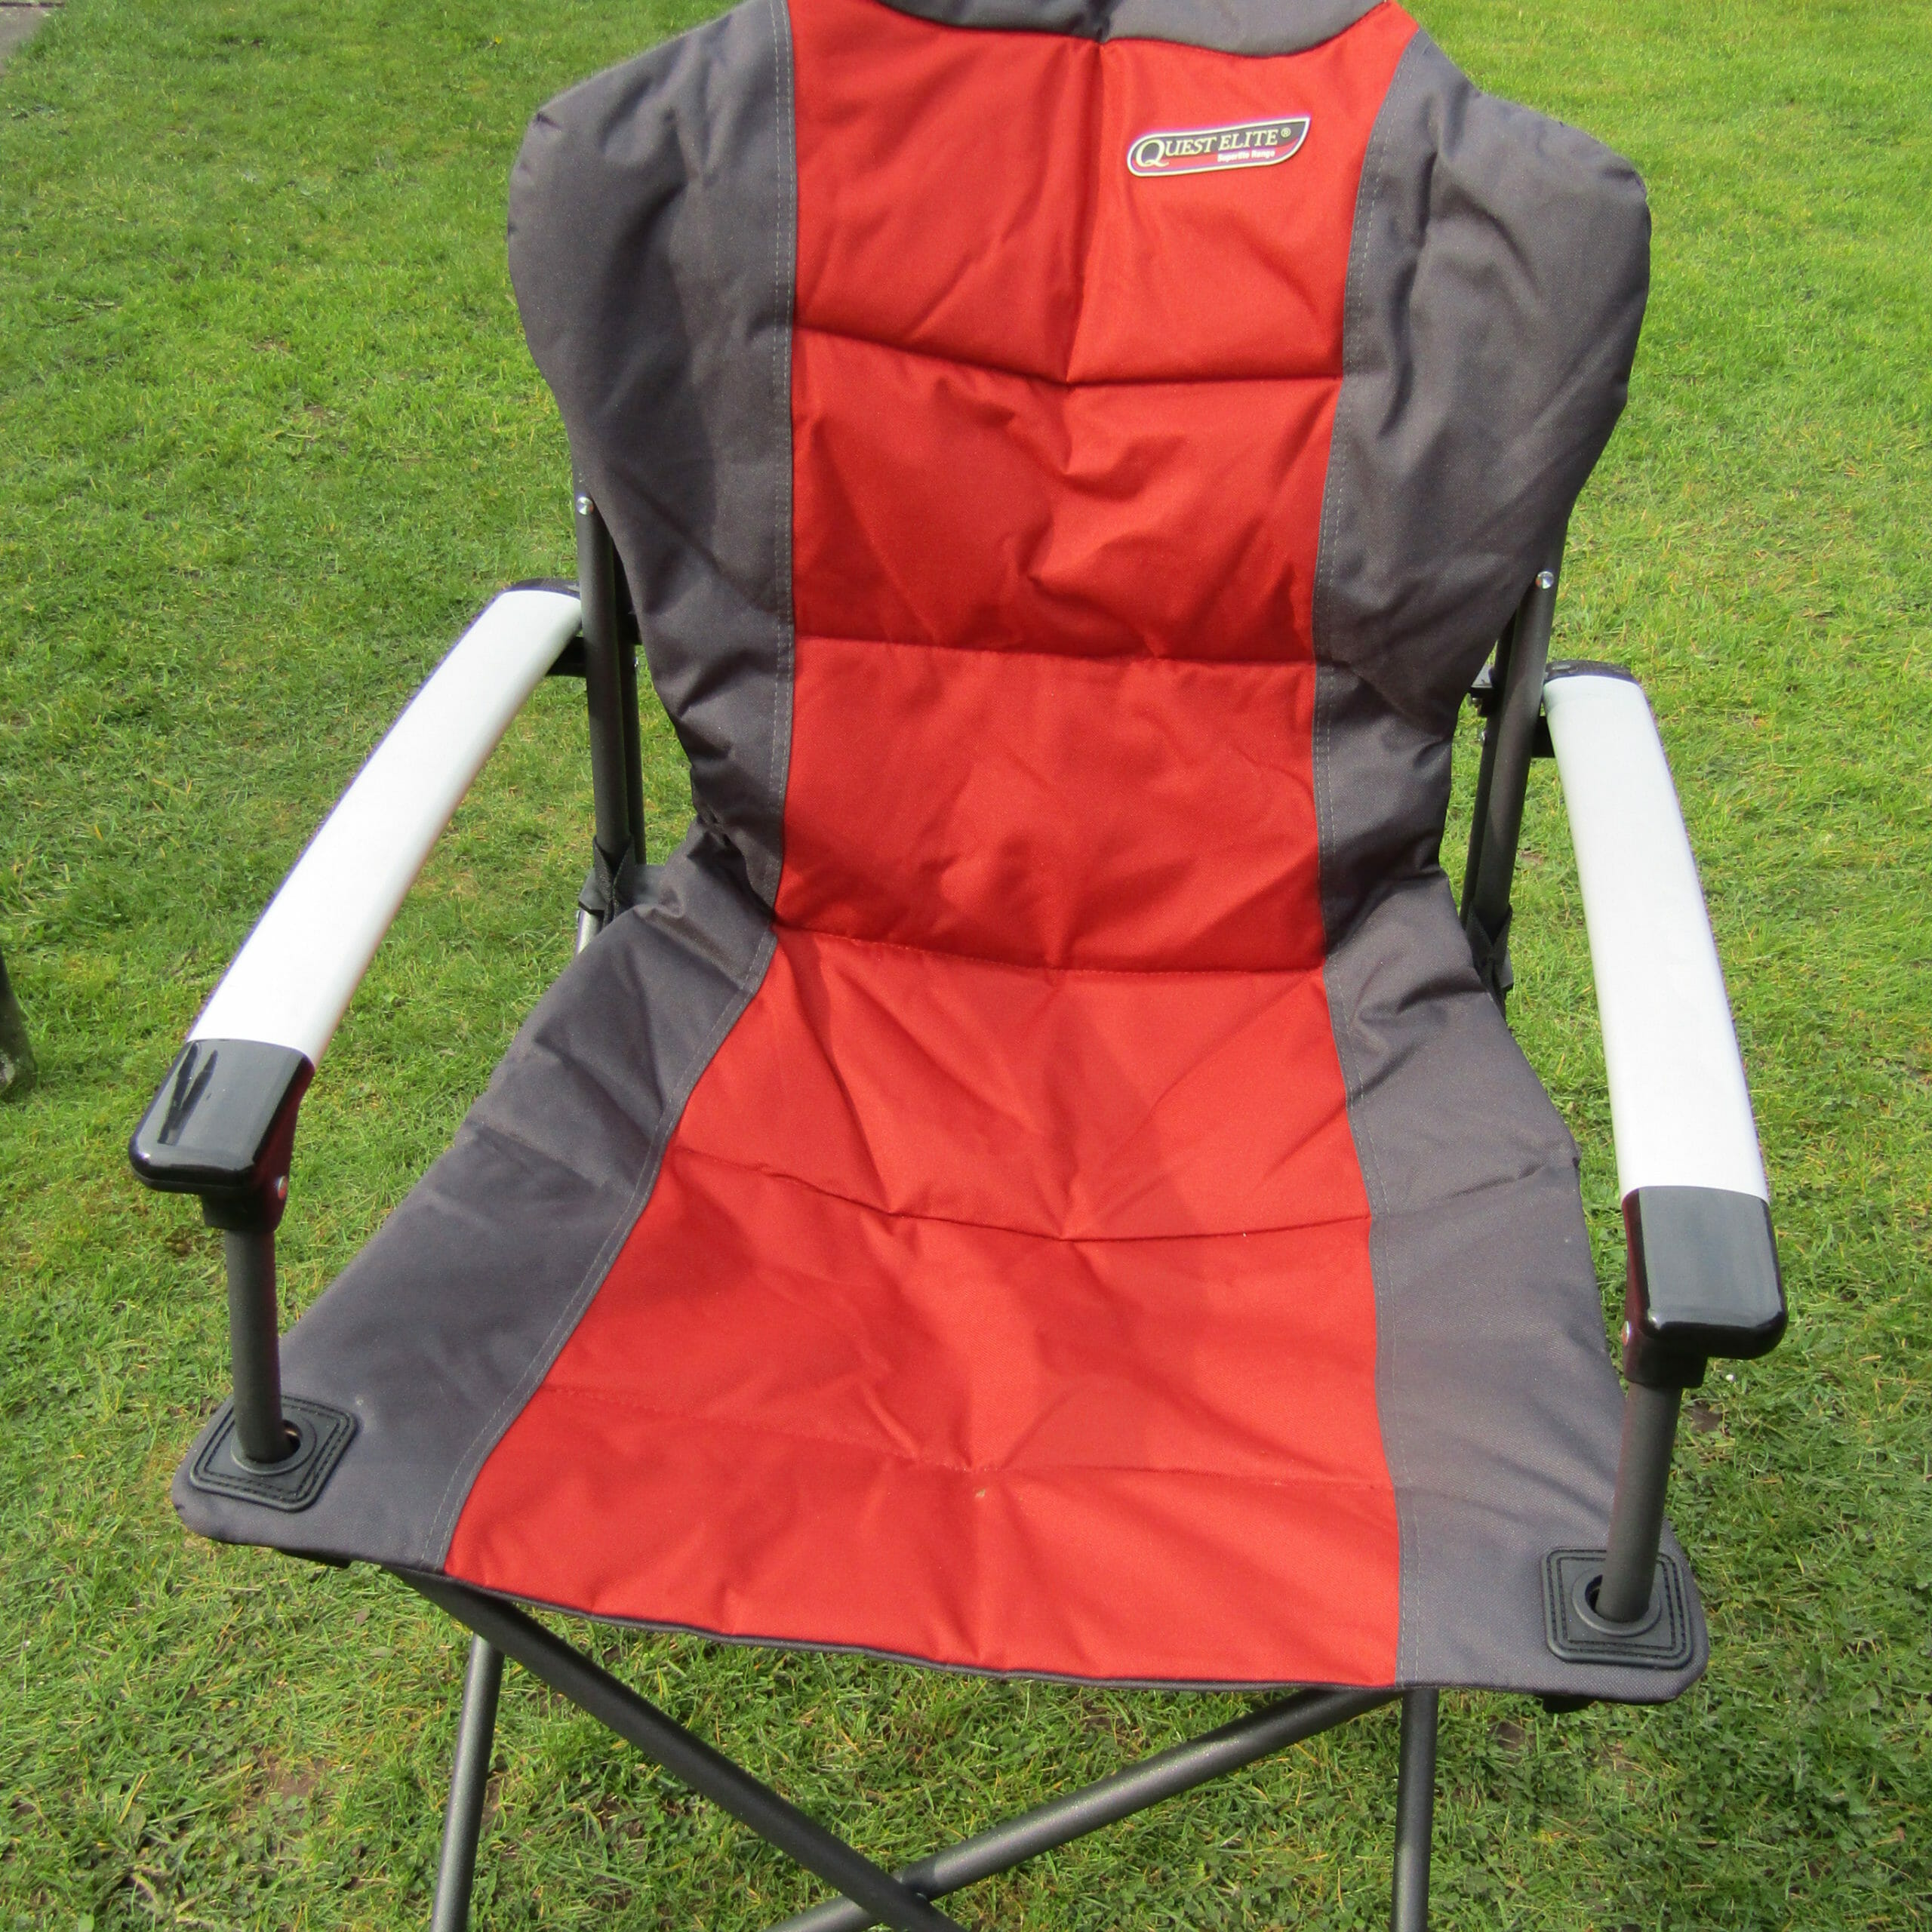 QuestElite Superlite Camping Chair